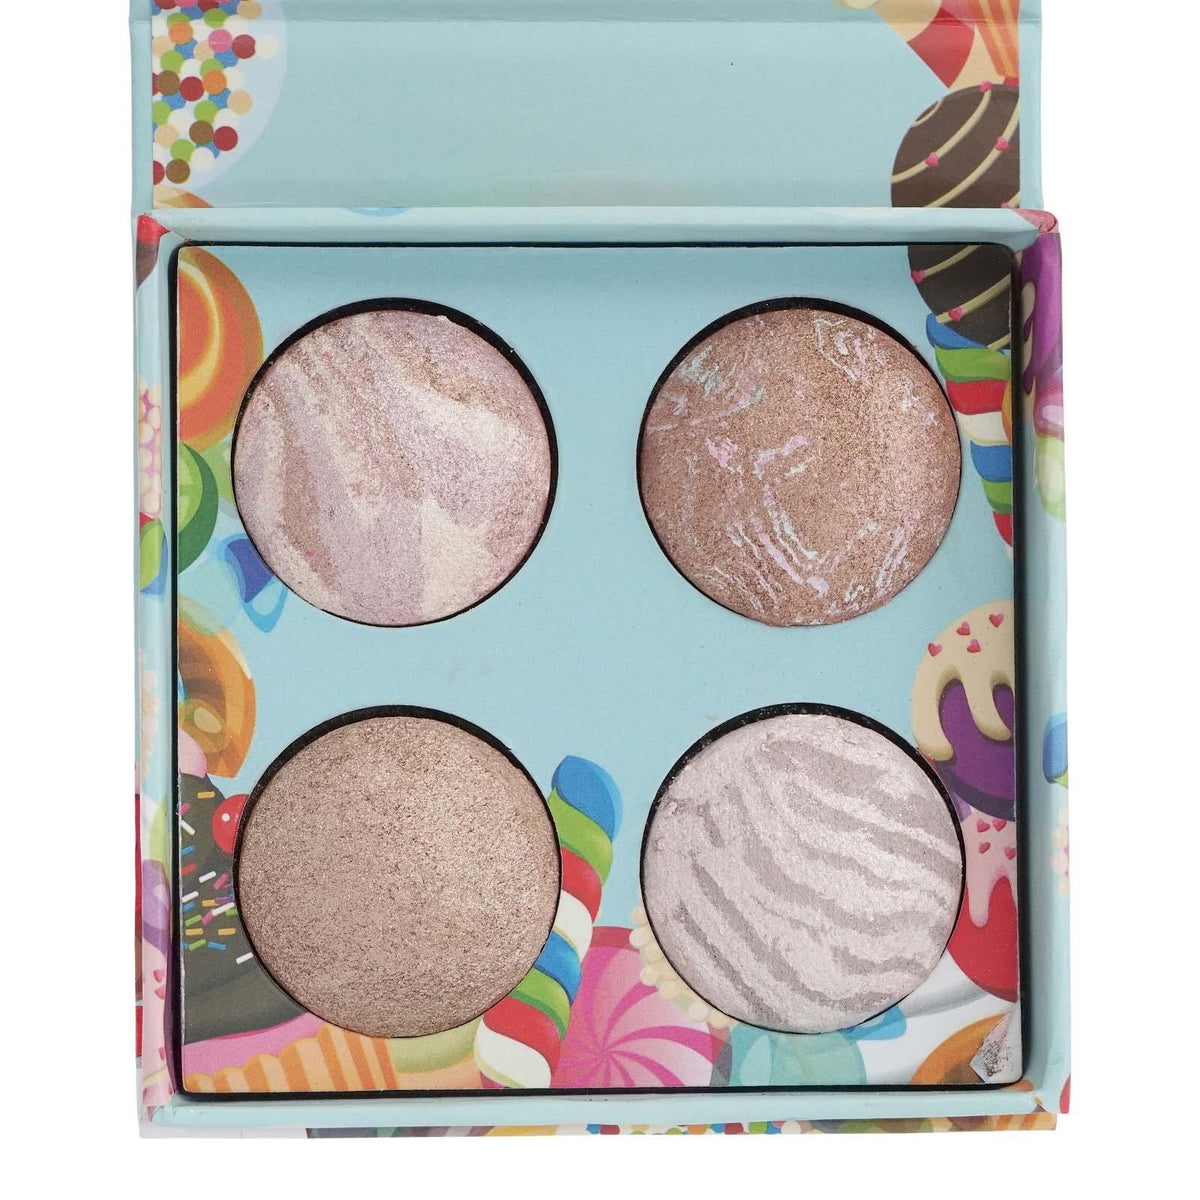 BEAUTY CREATIONS | Baked Pops Highlighter (4 colors X Case of 12)